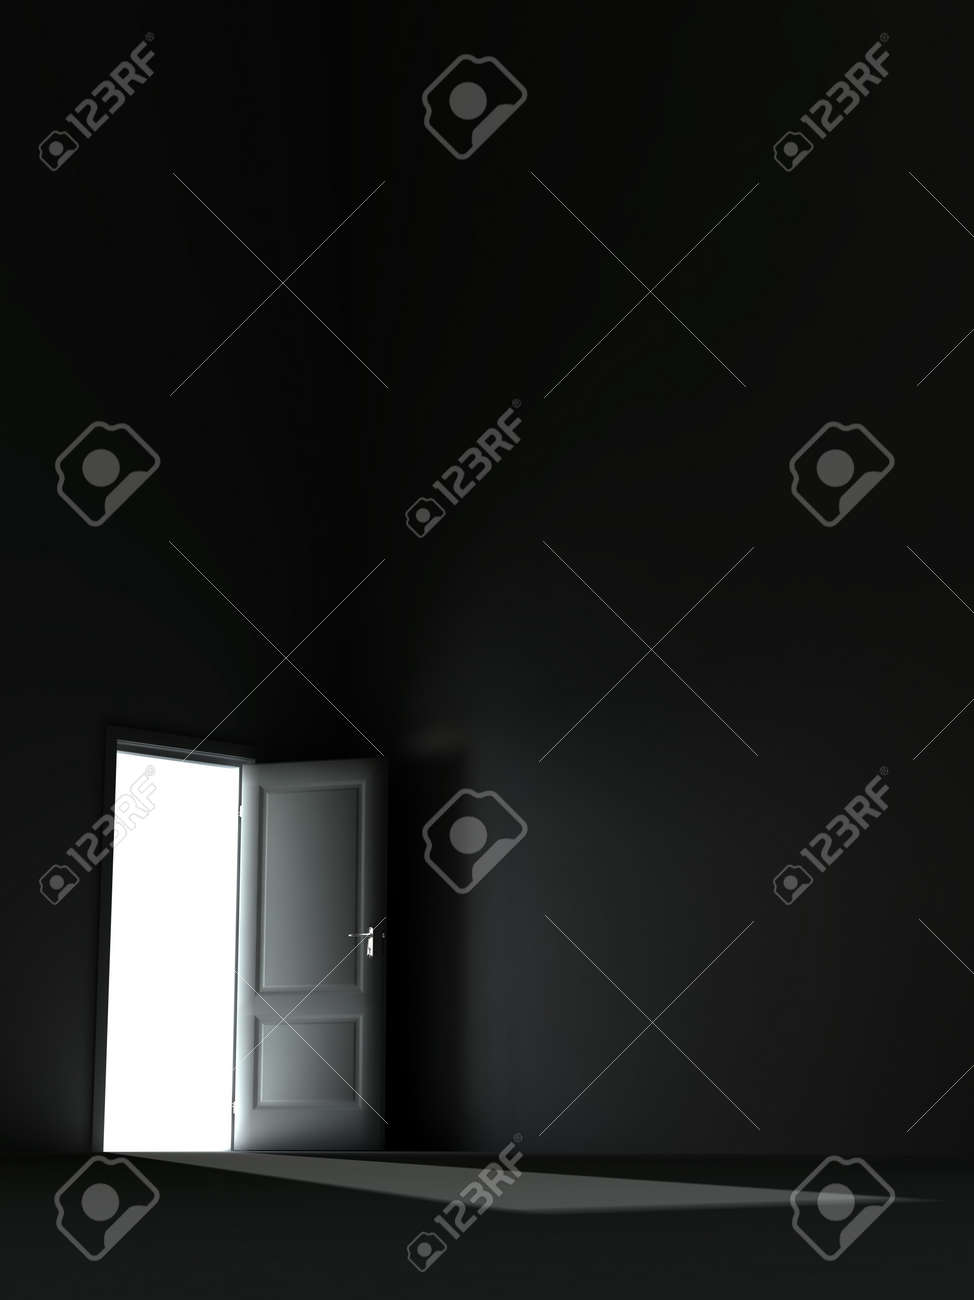 bright light from the unclosed door in a dark room Stock Photo - 4288098